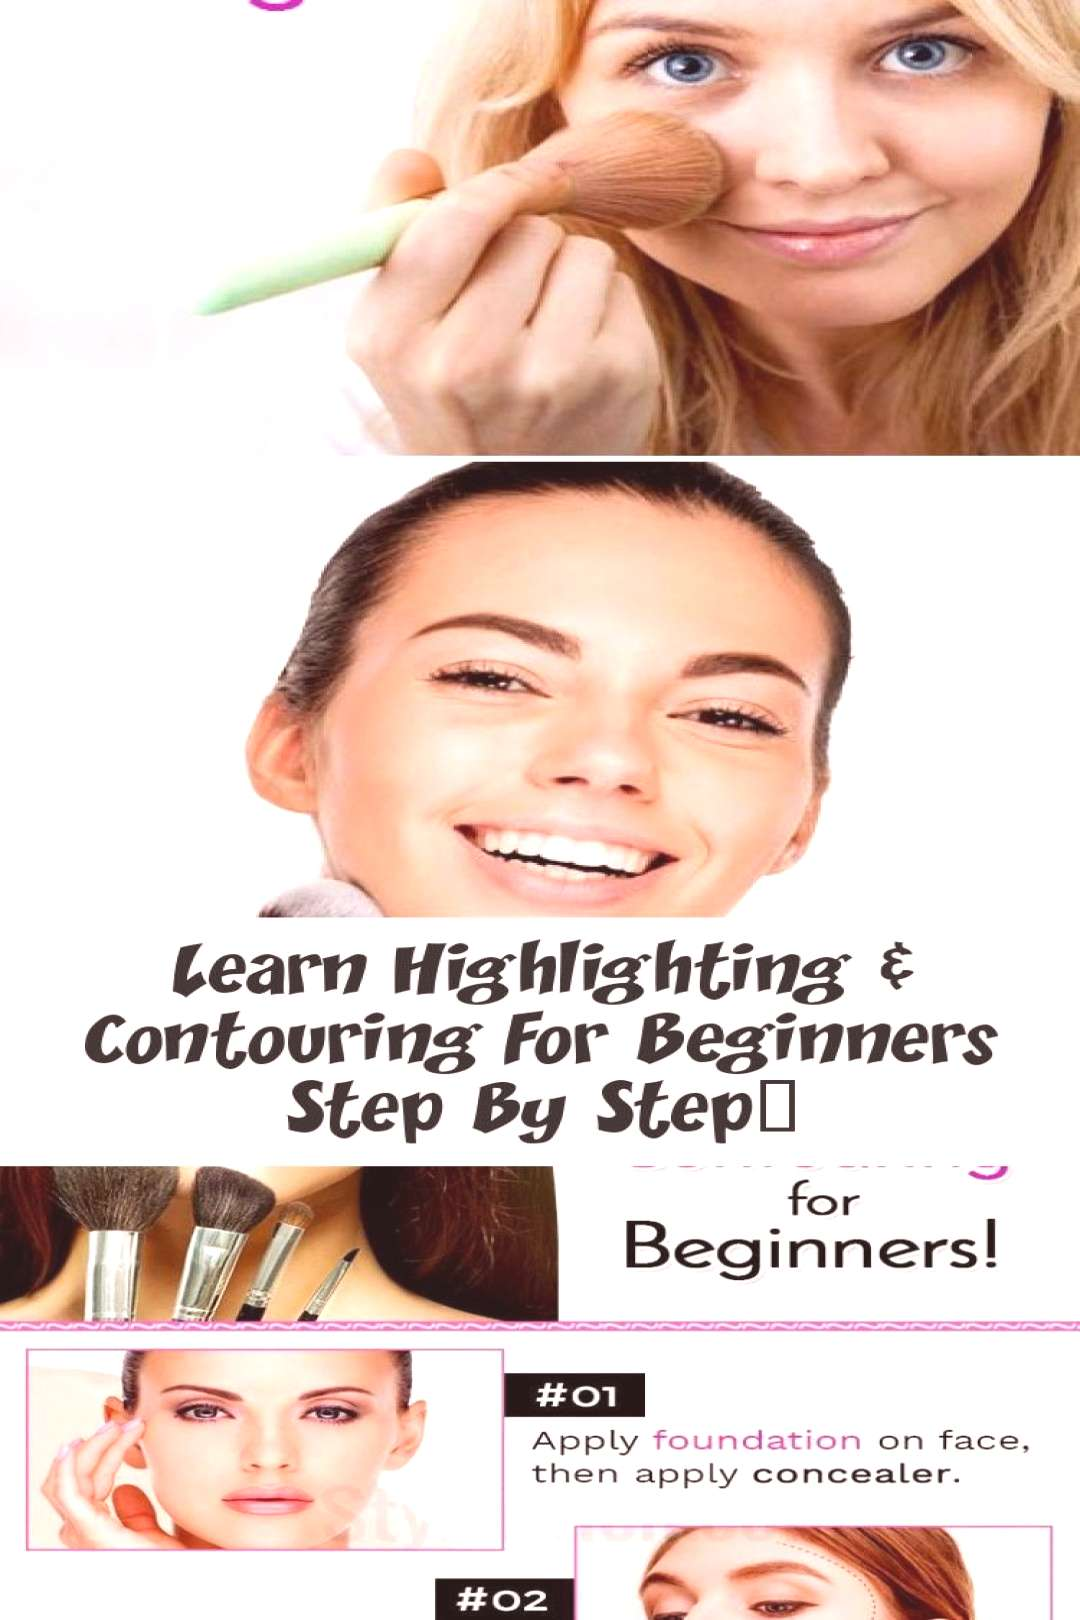 Learn step-by-step highlighting and contouring for beginners ... - MAKEUP - ... , Learn step-by-st